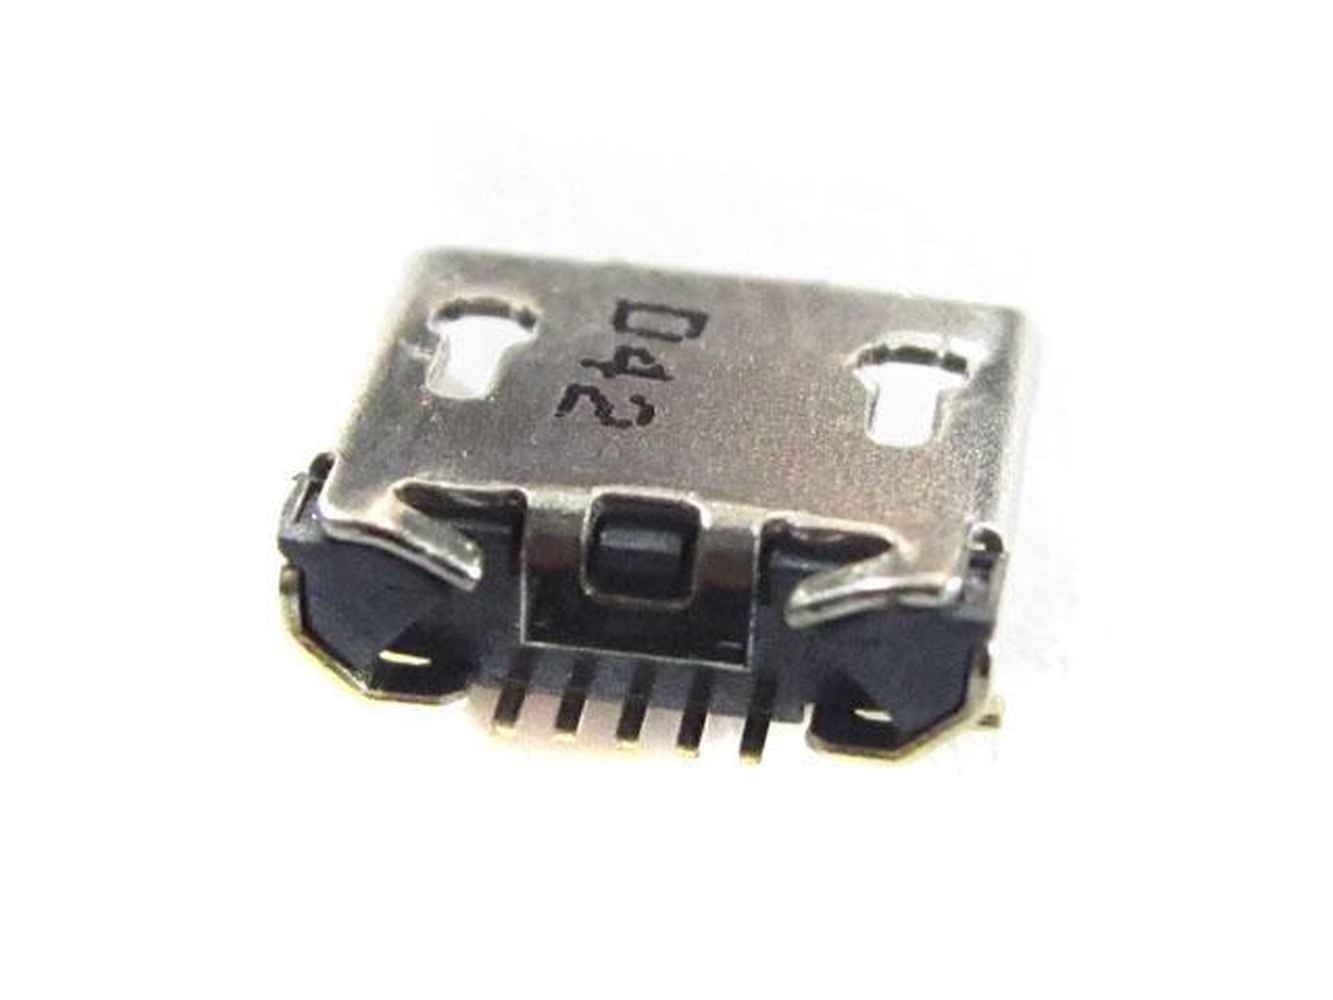 Charging Connector for Nokia Lumia 610